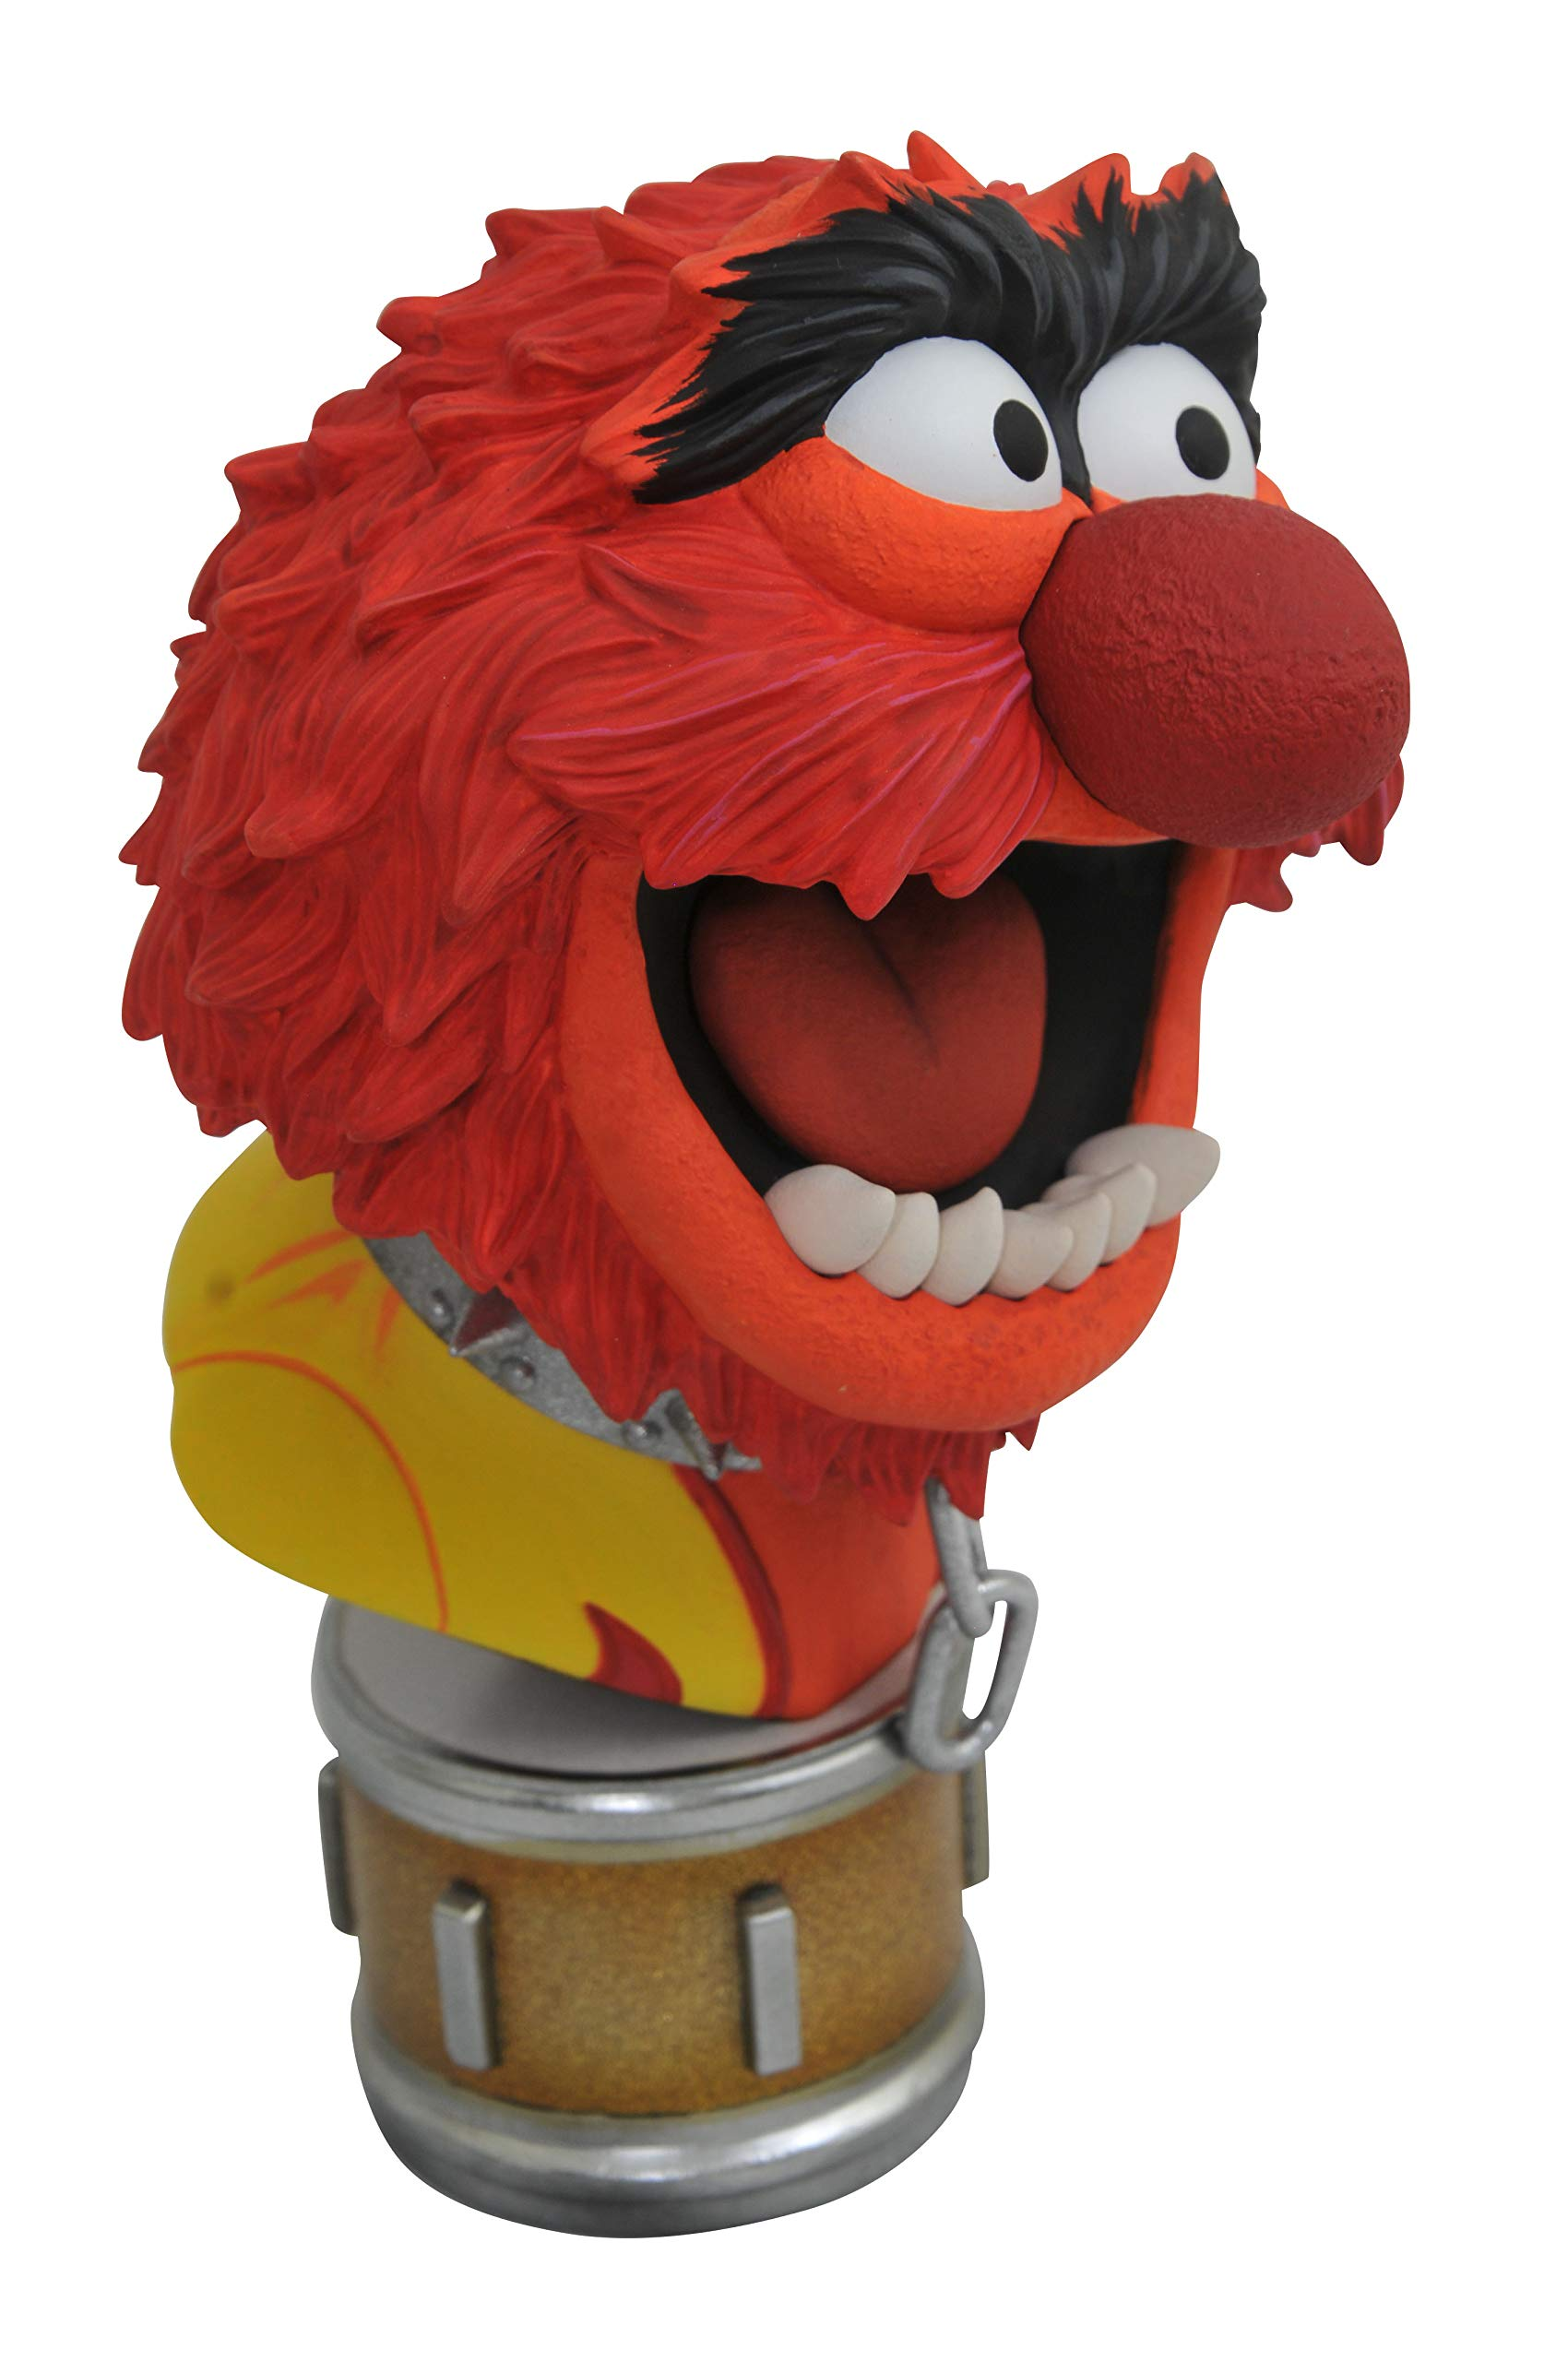 DIAMOND SELECT TOYS OCT182226 Select Toys Legends in 3-Dimensions: The Muppets Animal 1: 2 Scale Bust, Multicolor by DIAMOND SELECT TOYS (Image #4)